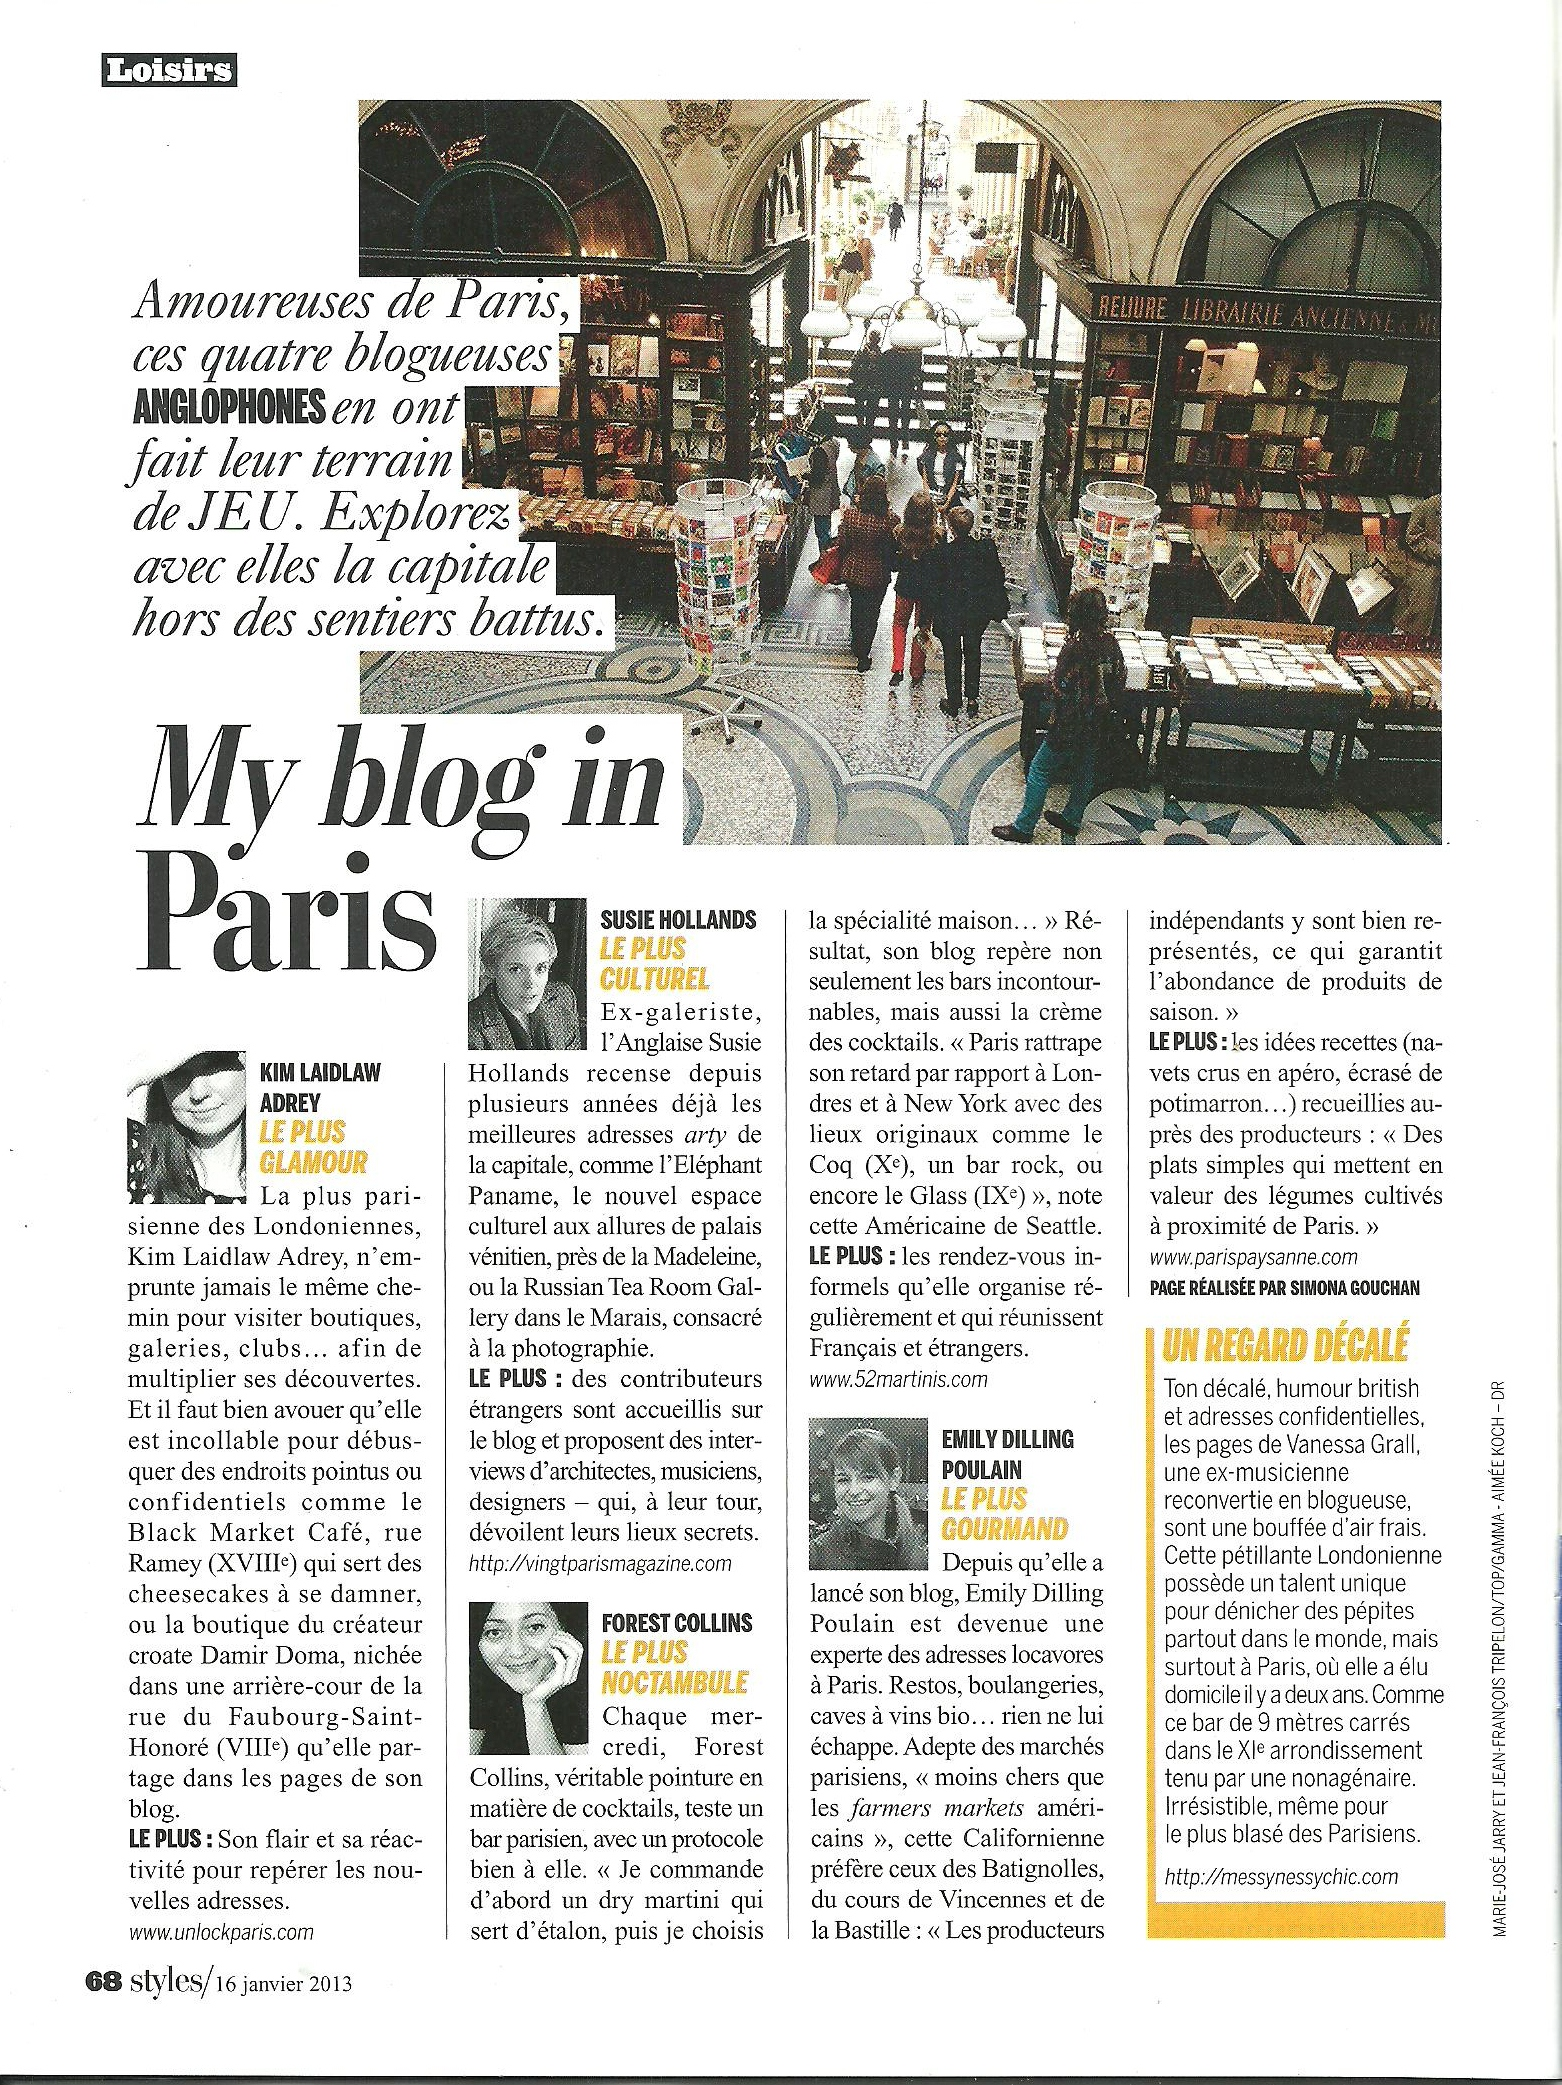 Paris Paysanne is a featured blog in L'Express Styles